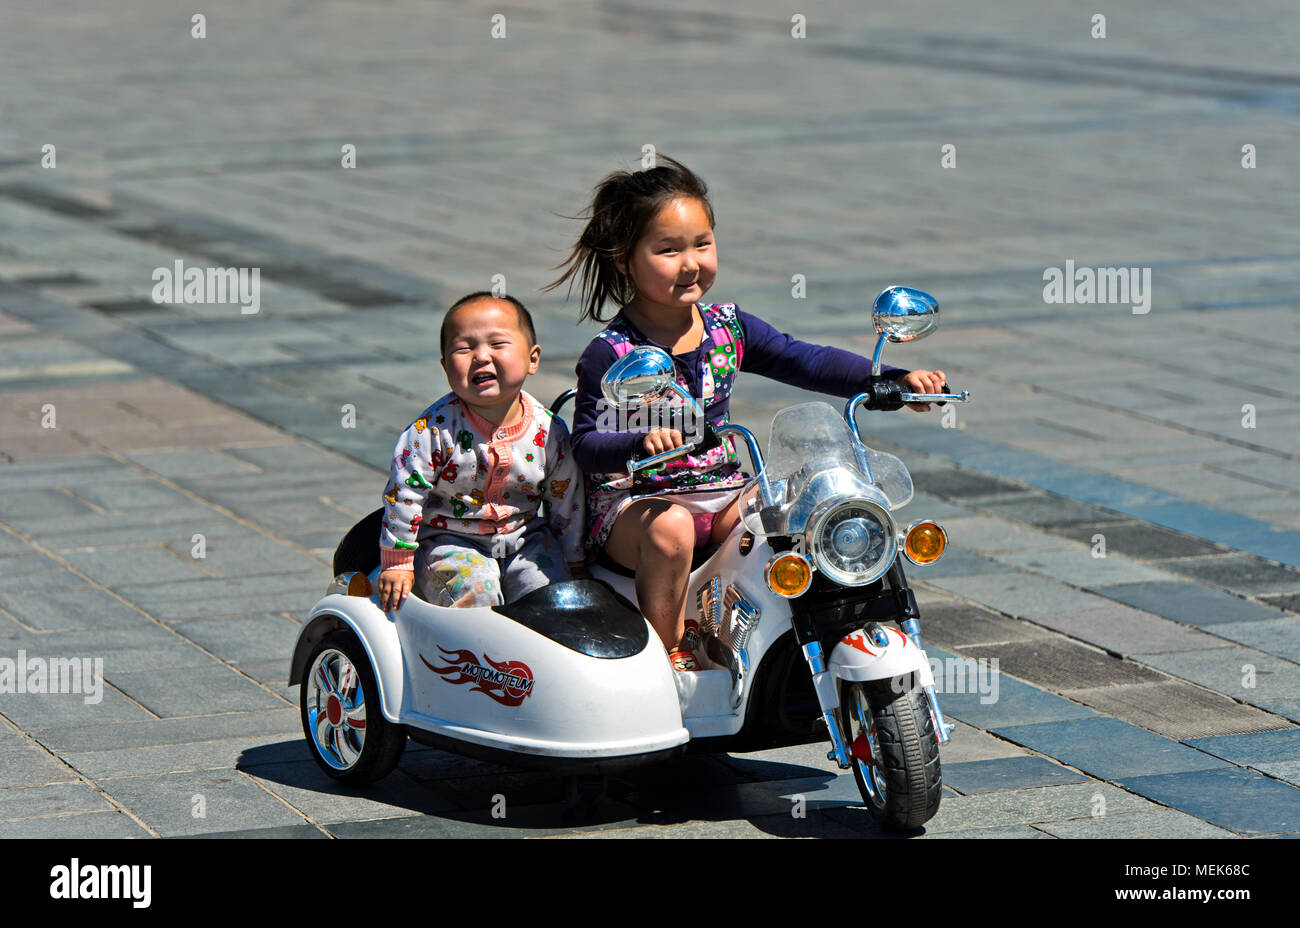 6 to 8-year old girl riding an electric toy motor-bike with her brother on Sukhbaatar  Square, Ulaanbaatar, Mongolia - Stock Image